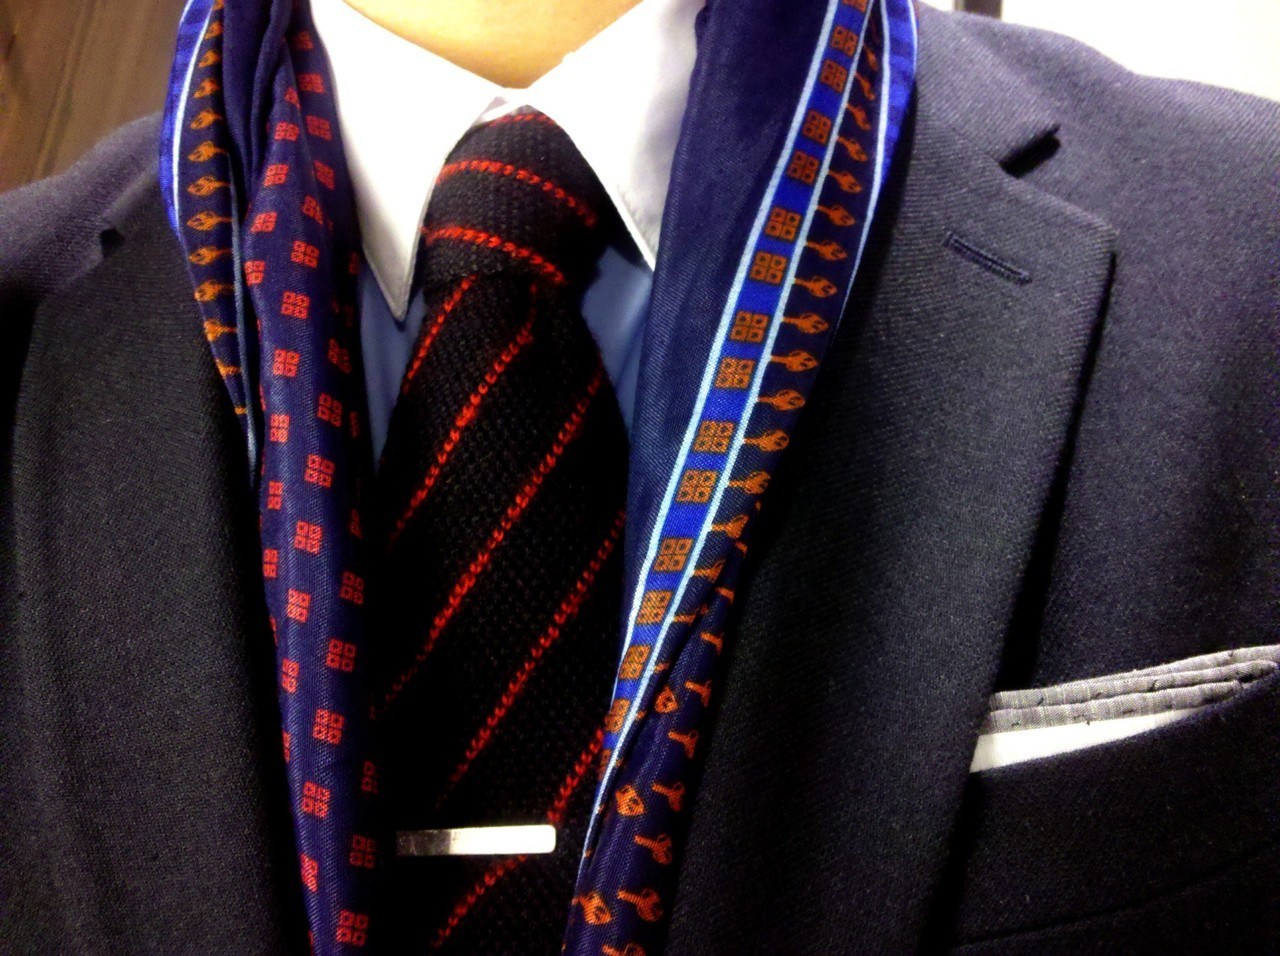 todaystie:  Today's Tie  contrast collar. sporting tie bar. scarf looking fresh. knit tie no stress. no pitti. no mess.